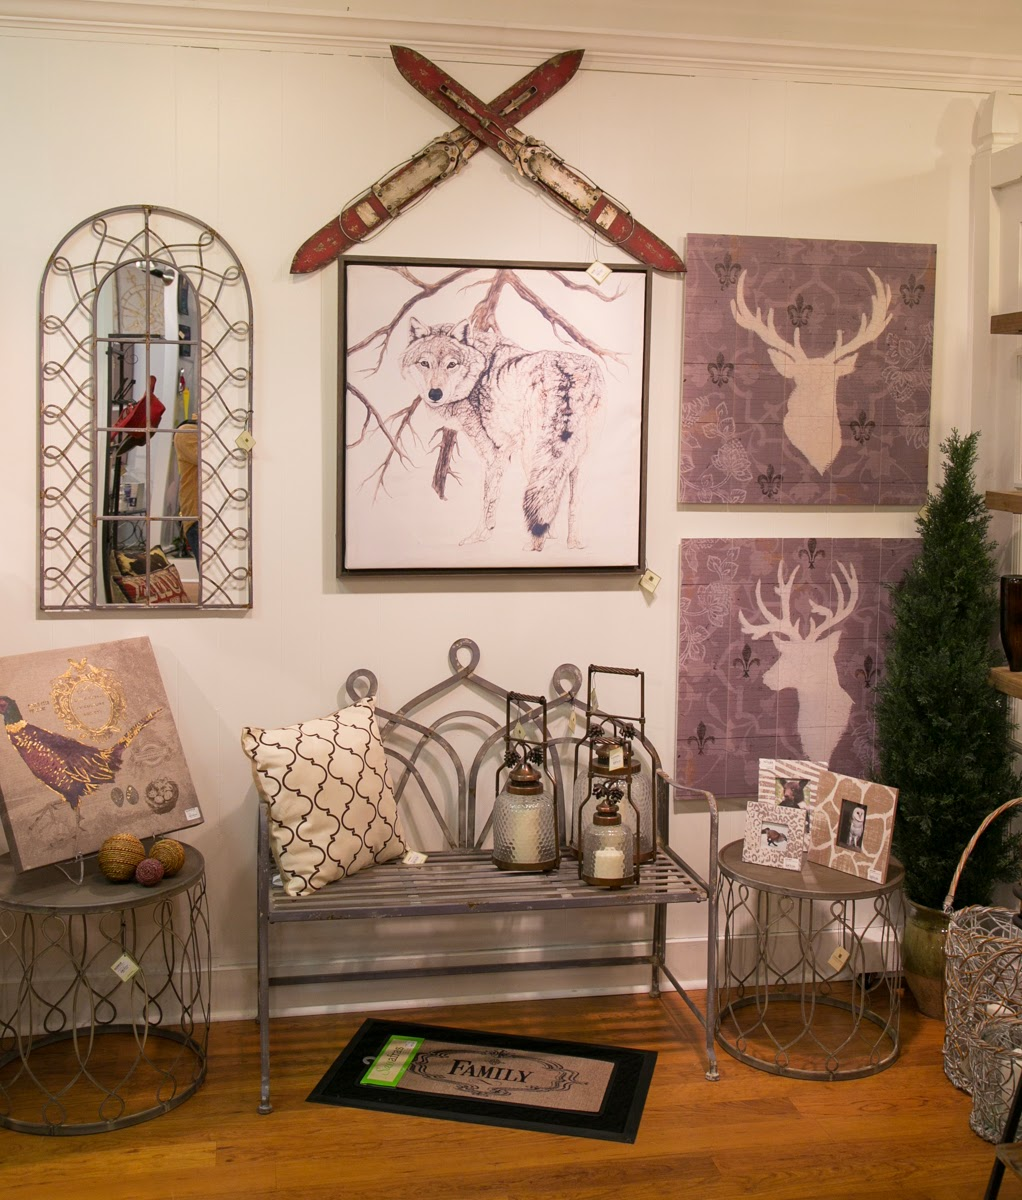 evergreen enterprises cape craftsmen home decor highlights we also carry popular themes like woodland lodge and rustic western again making sure we have all the piece types covered from wall decor